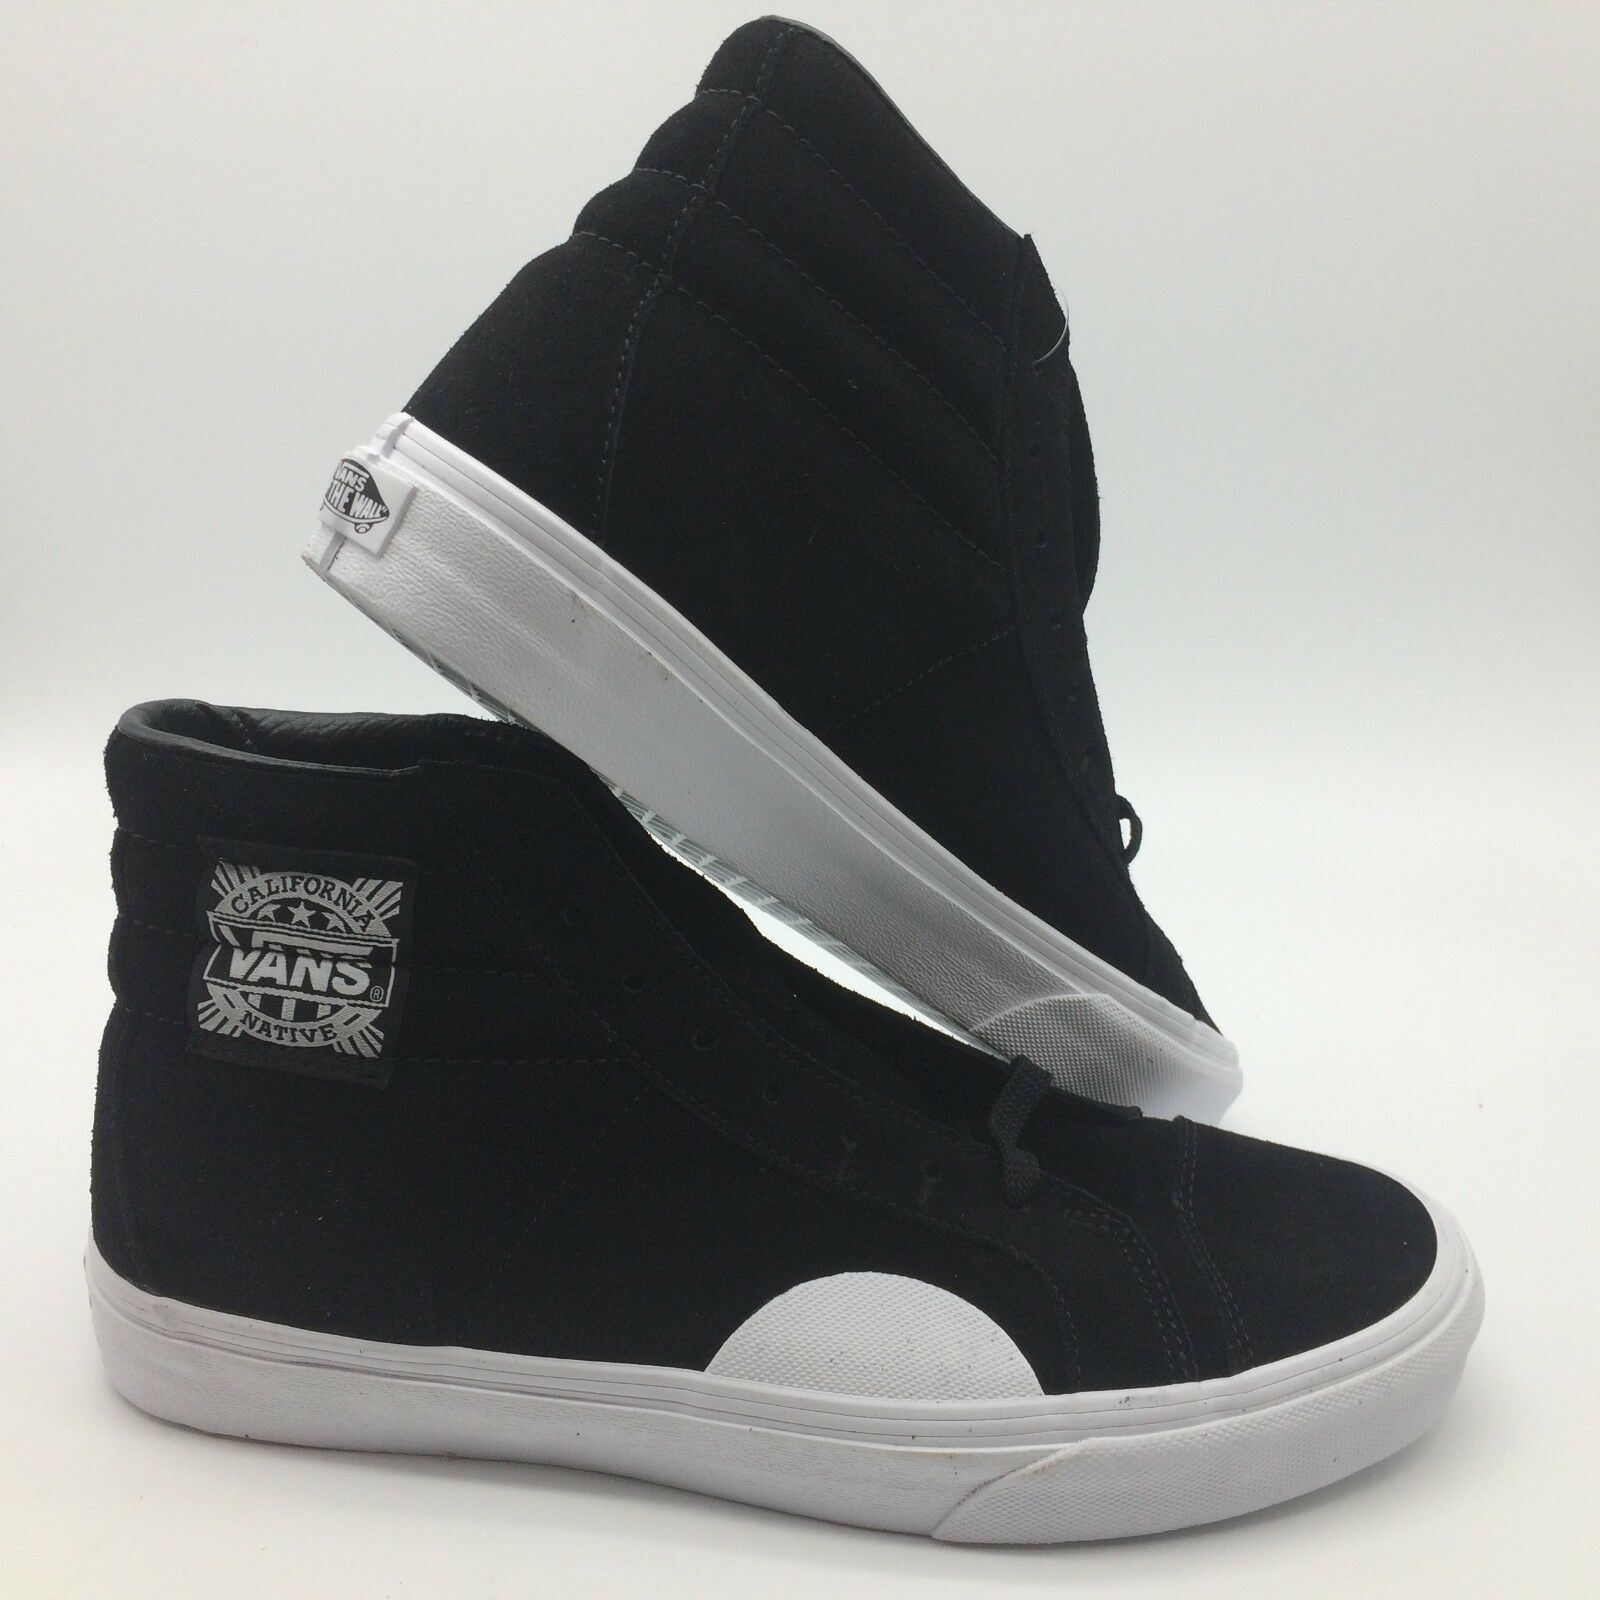 Vans Men's shoes  Style 238  (Native Suede) Black White